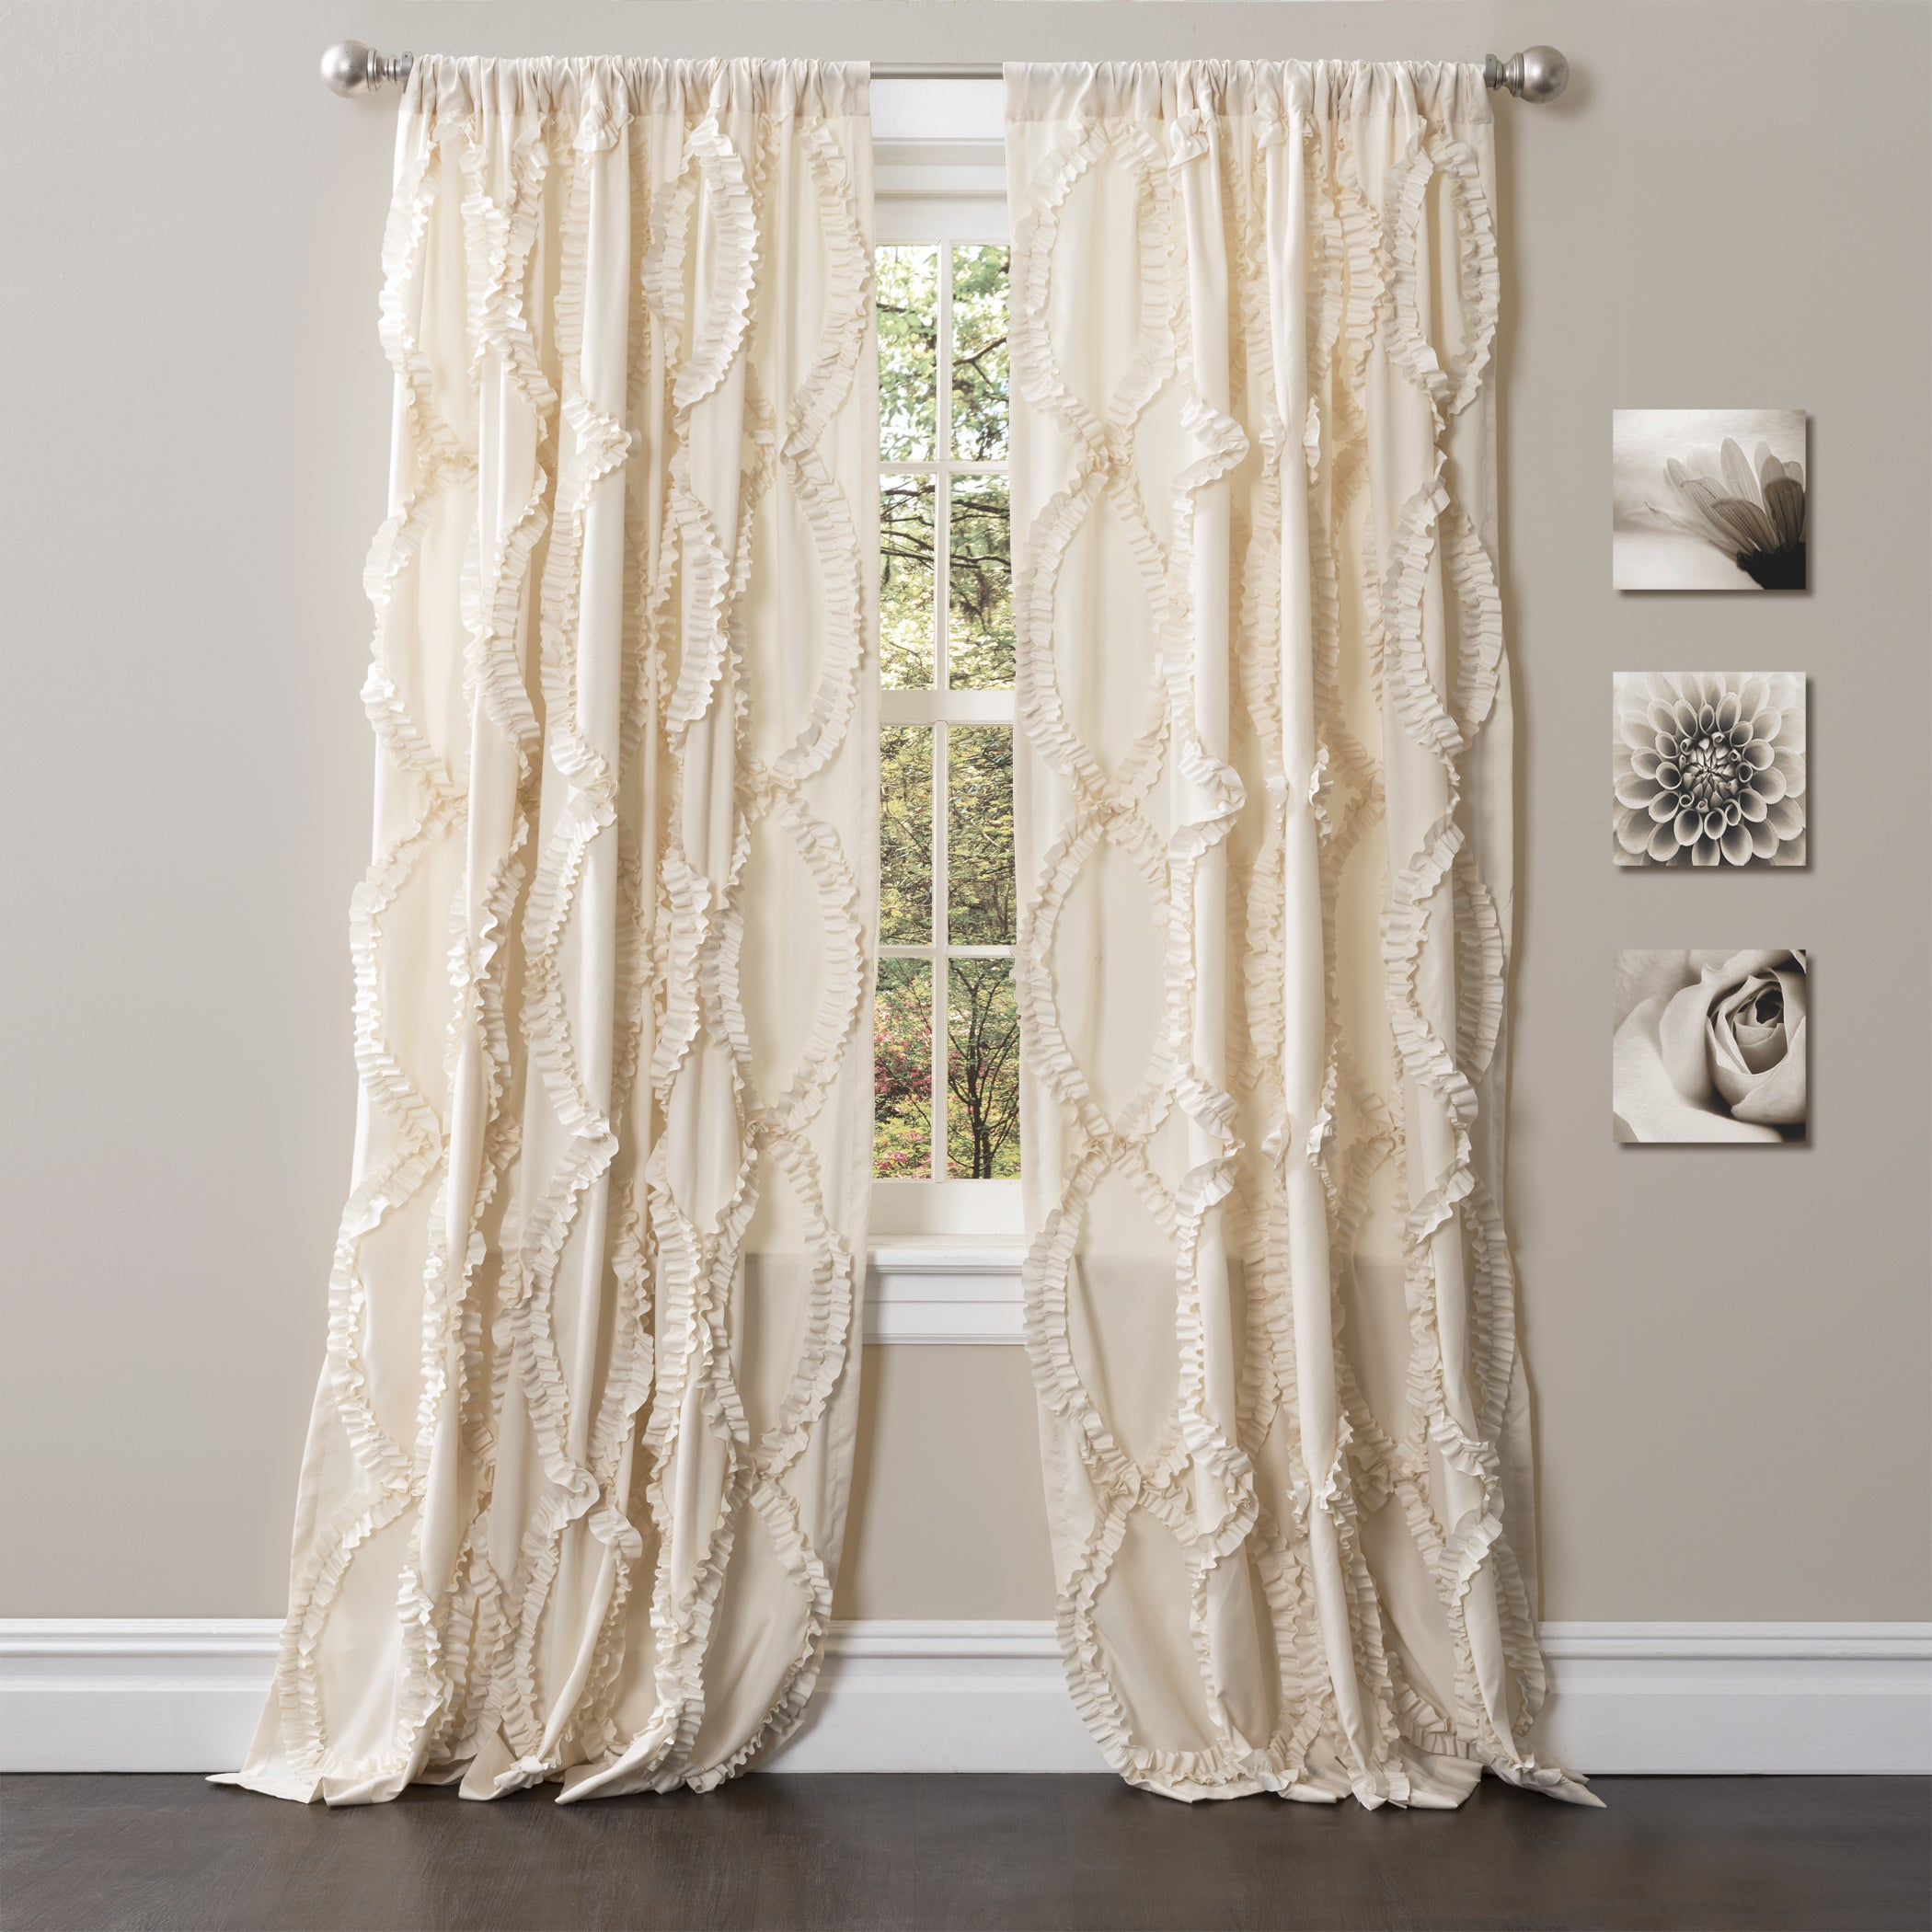 with lining sale silver to fabric diy large from hero black best medium block faqs size wide for your curtain thermal insulated own under sewing material overstock canada window how about windows drapes of curtains blocking warm room blackout without make light cheap grey